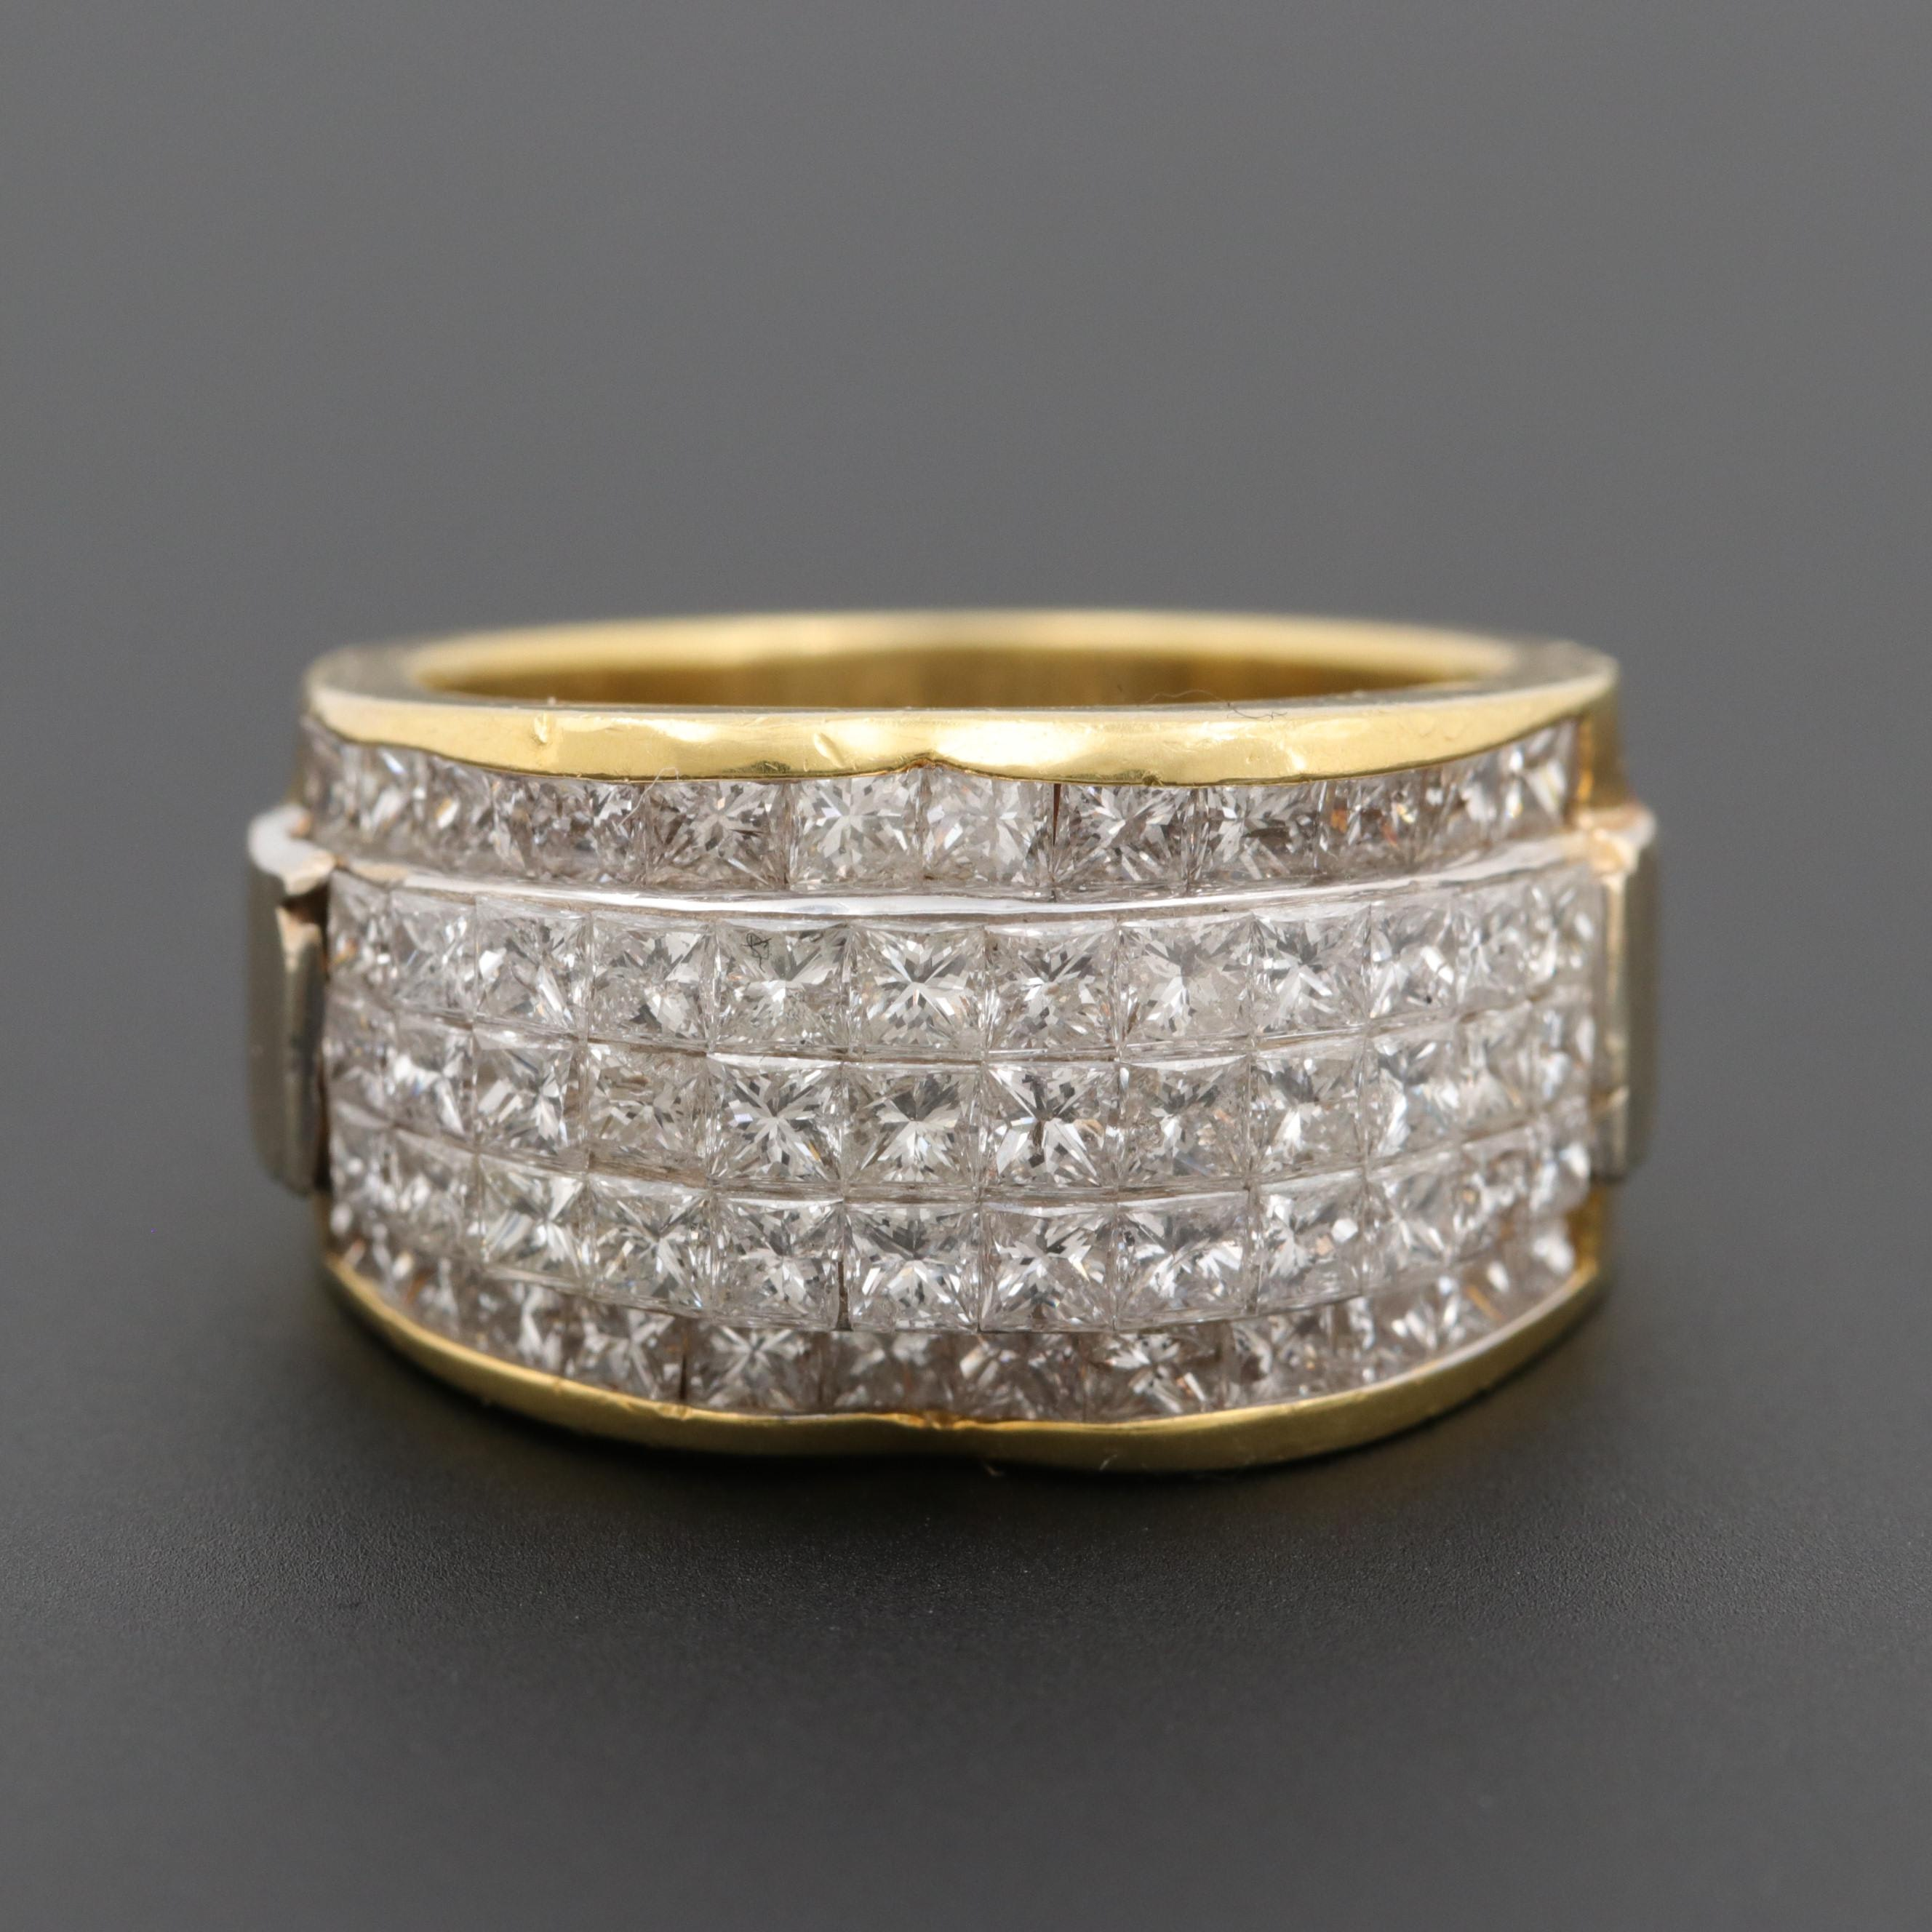 18K Yellow Gold 3.00 CTW Diamond Ring with 18K White Gold Setting